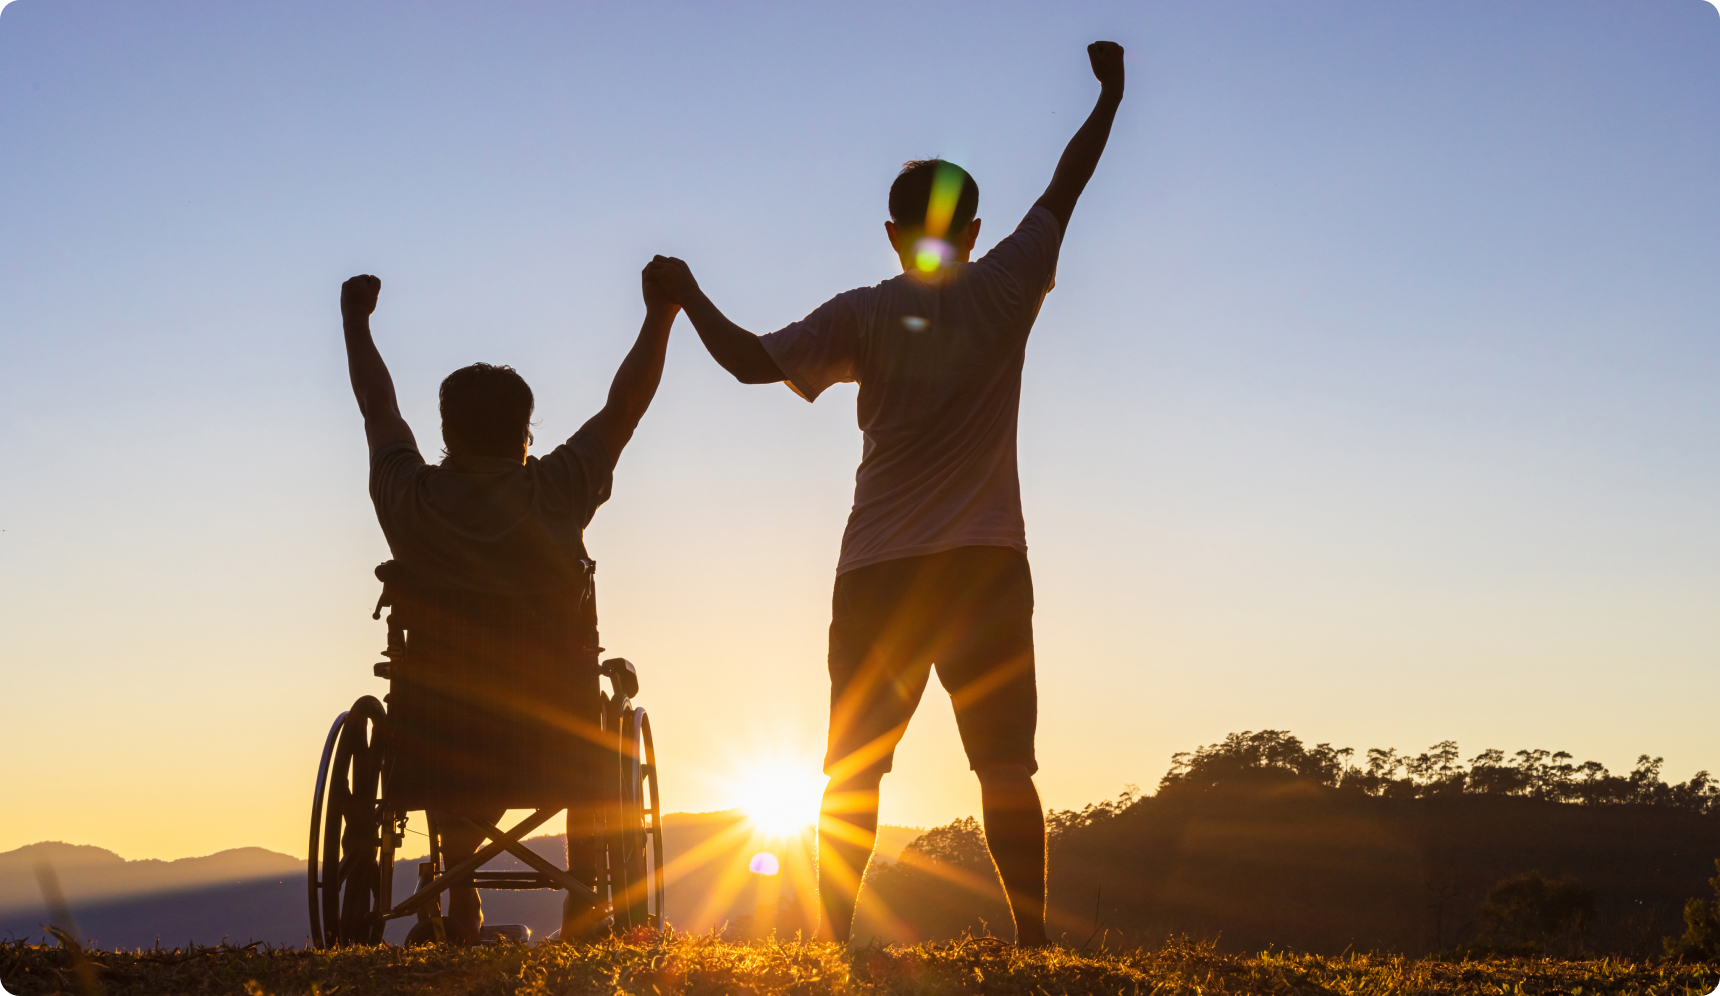 Silhouettes of person in wheelchair and person standing beside, with arms raised happily in the air